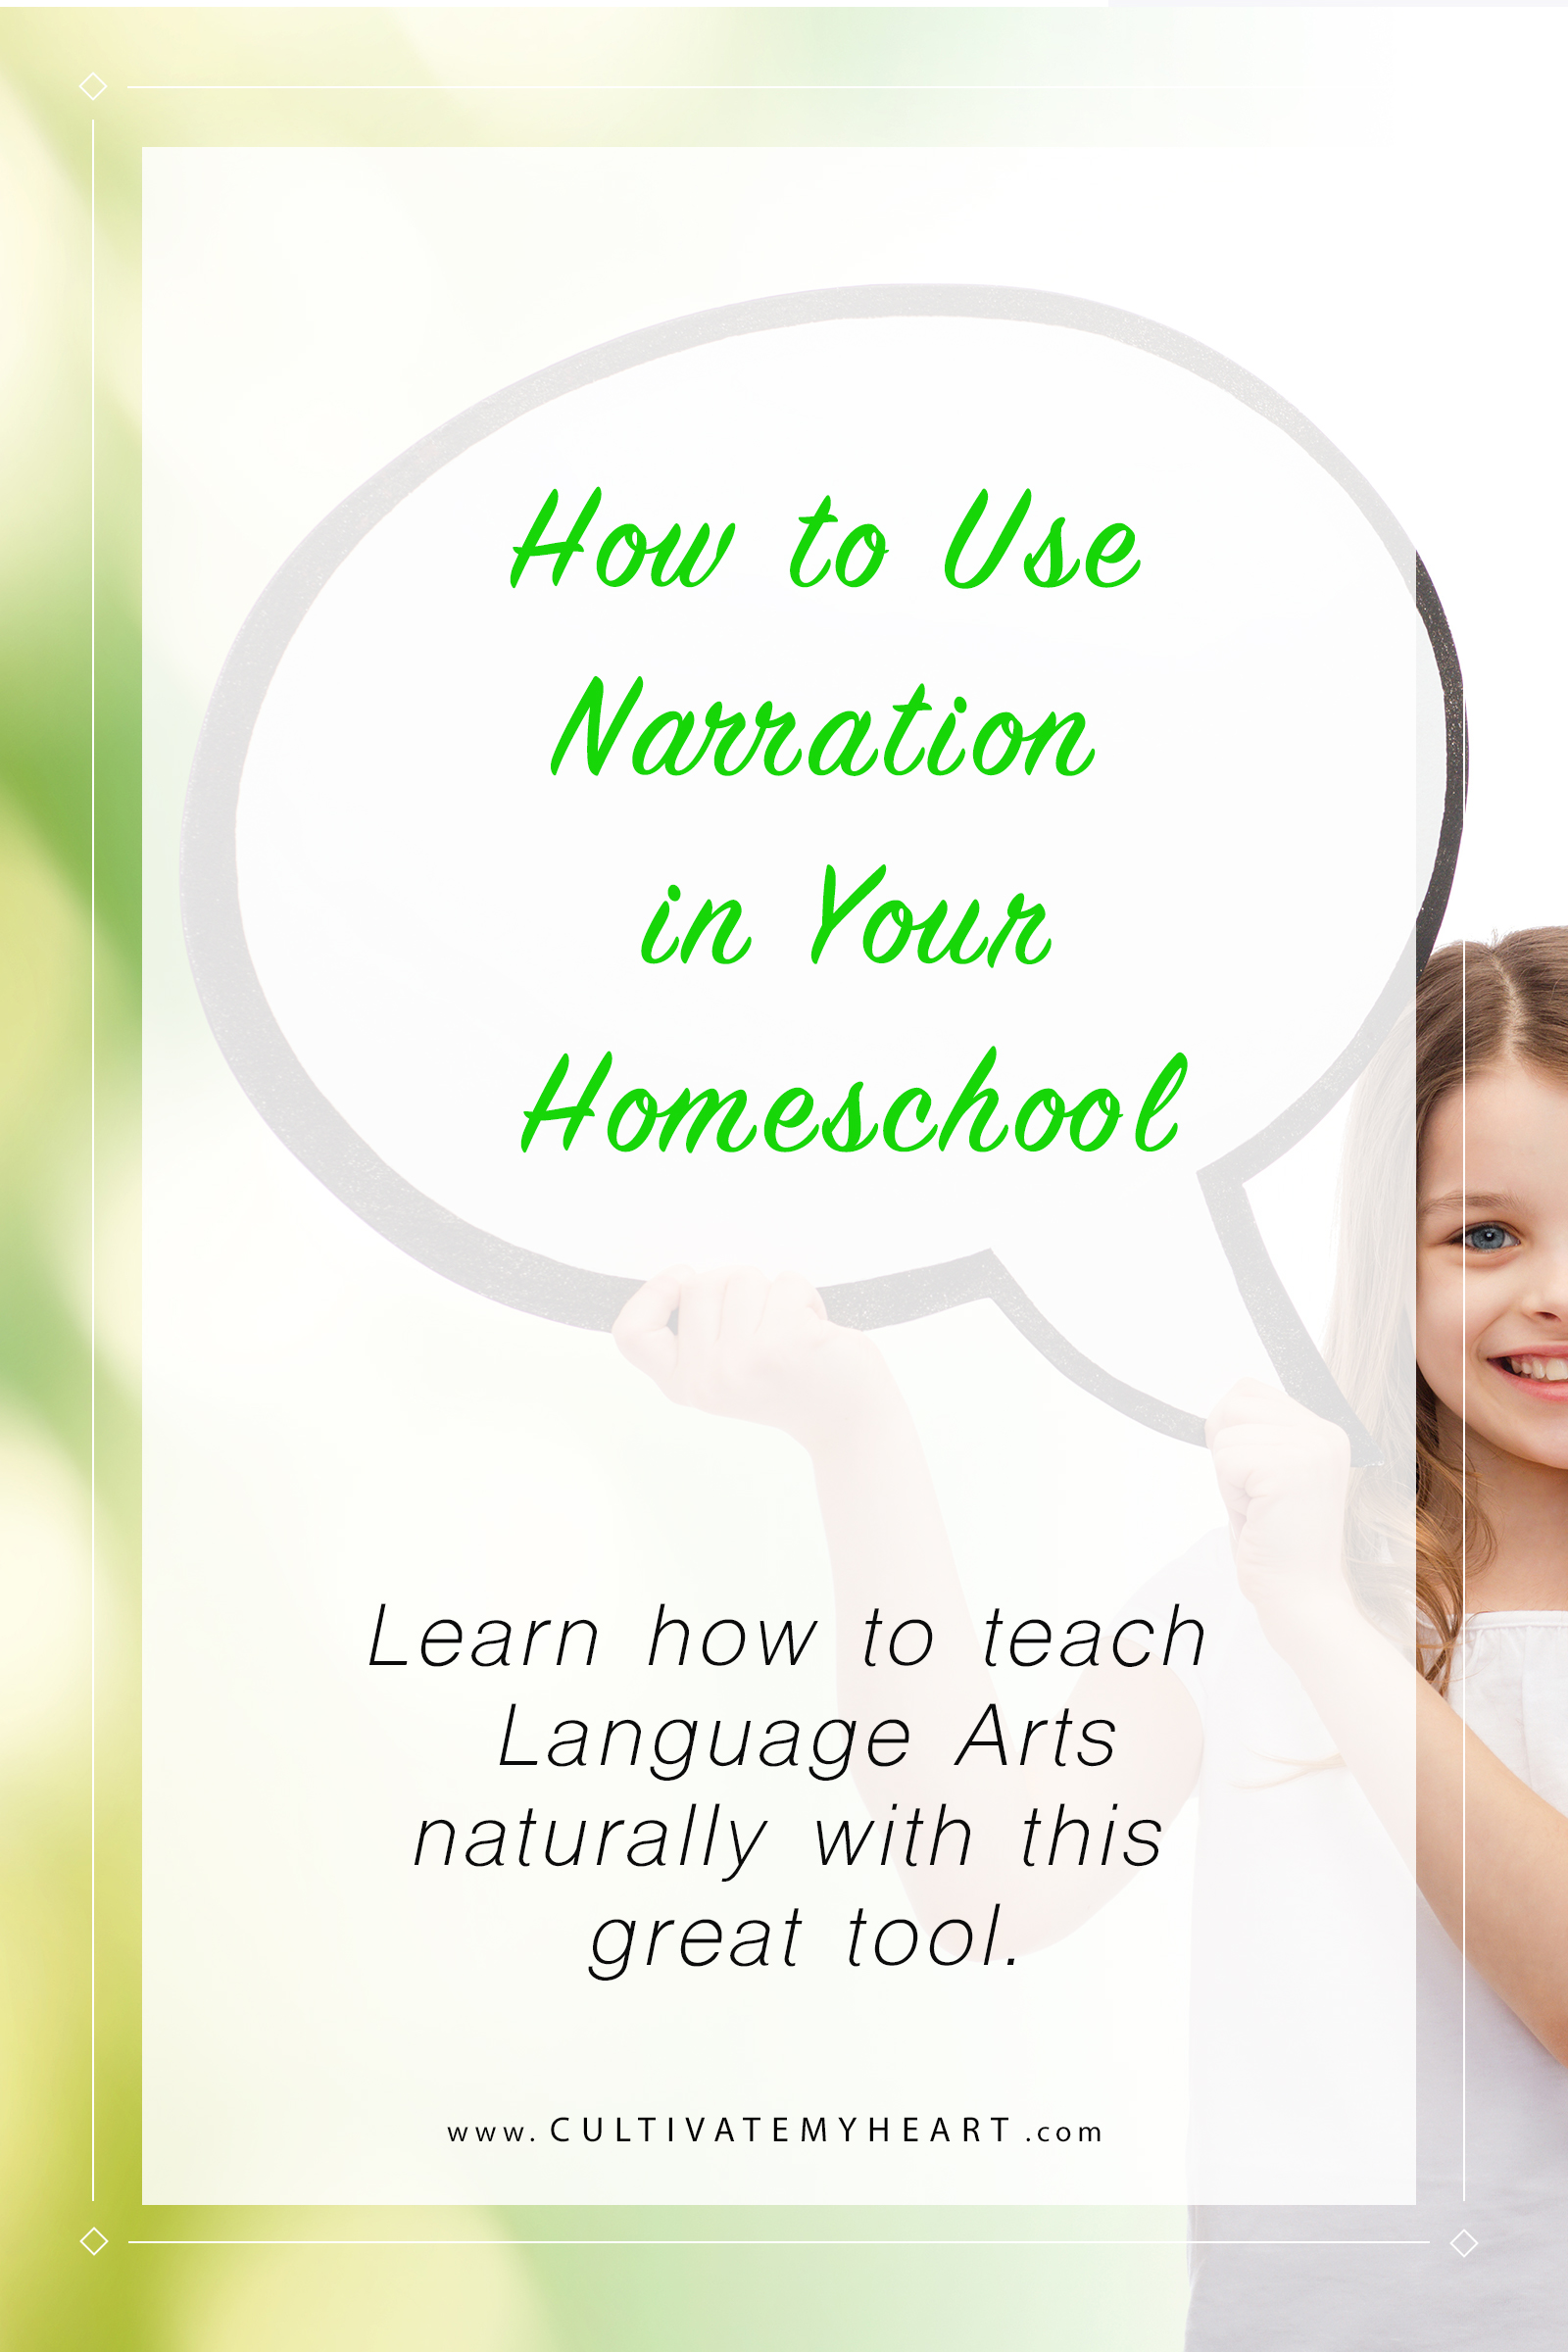 How can you teach Language Arts naturally in your homeschool? By using tools like narration. Learn how as you explore the benefits of this simple, but effective learning method.